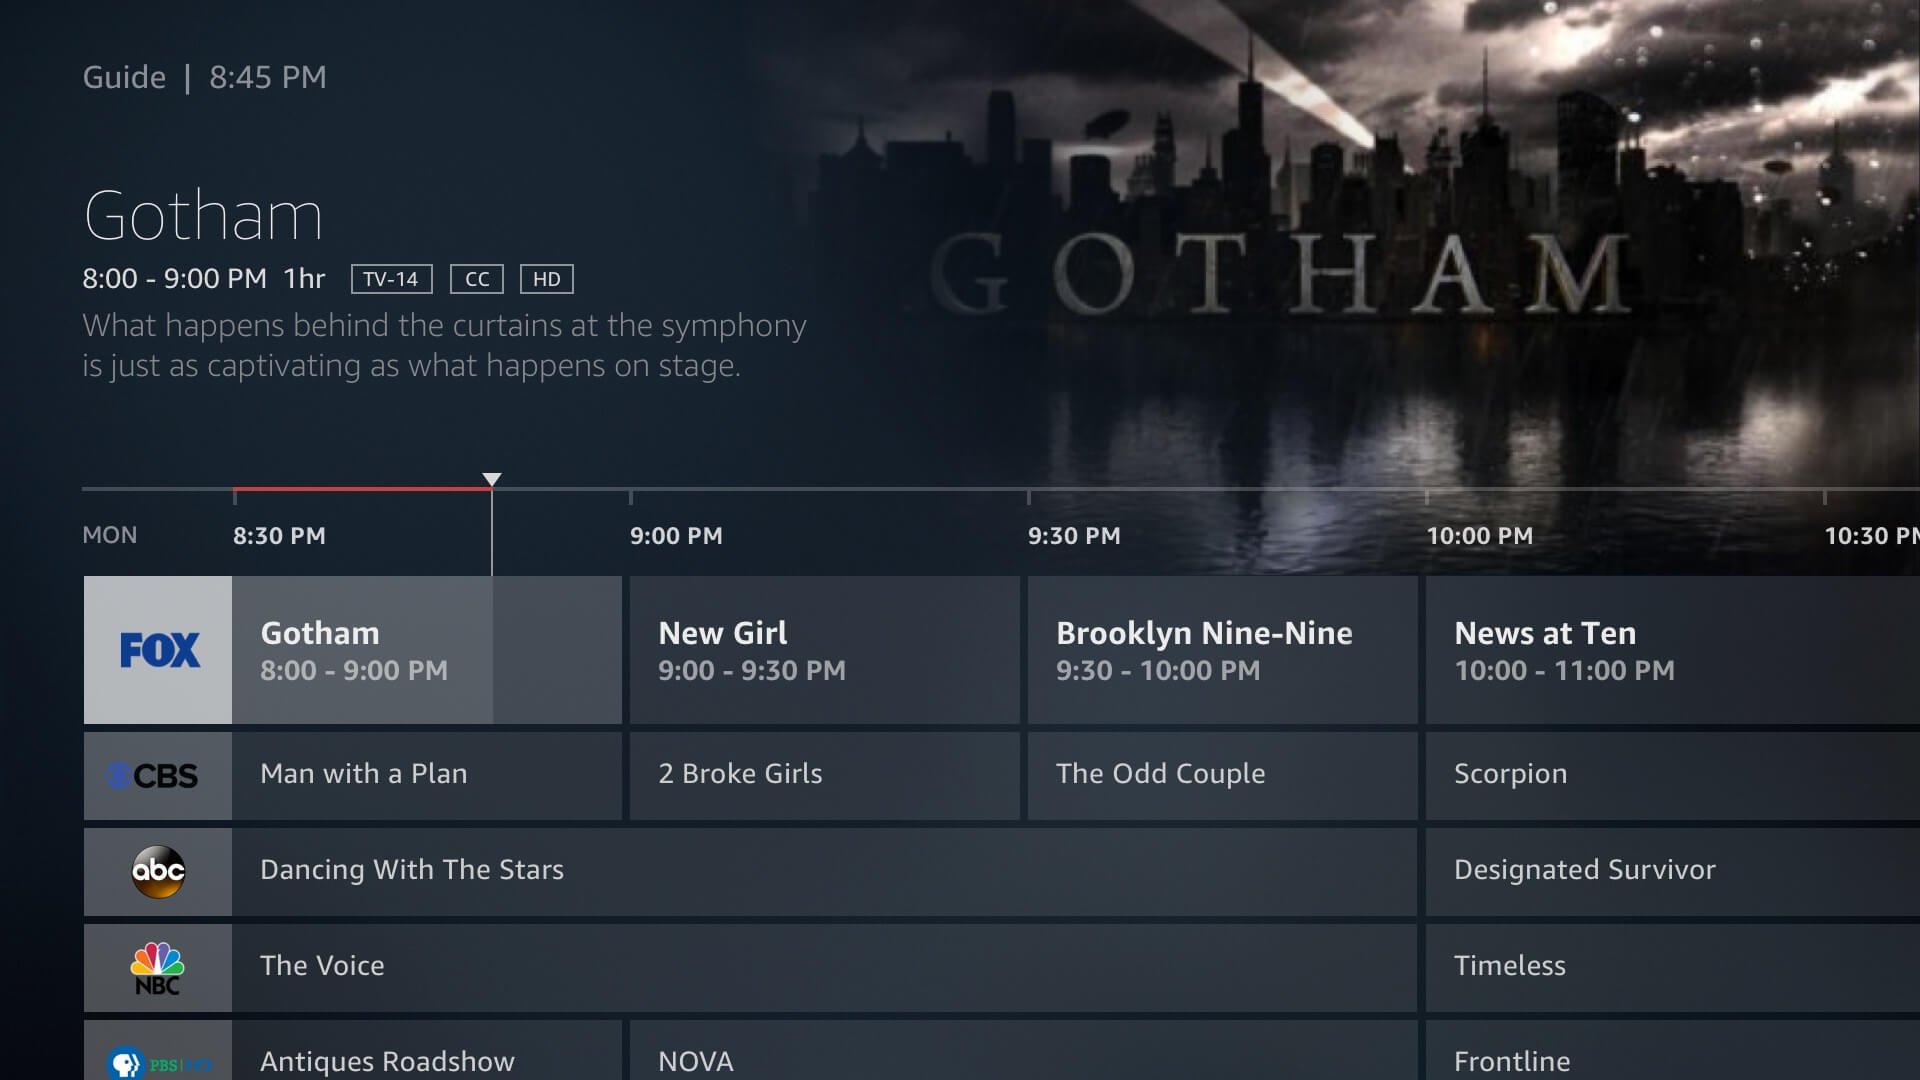 A guide on the Westinghouse 4k UHD Smart TV - Amazon Fire TV edition.